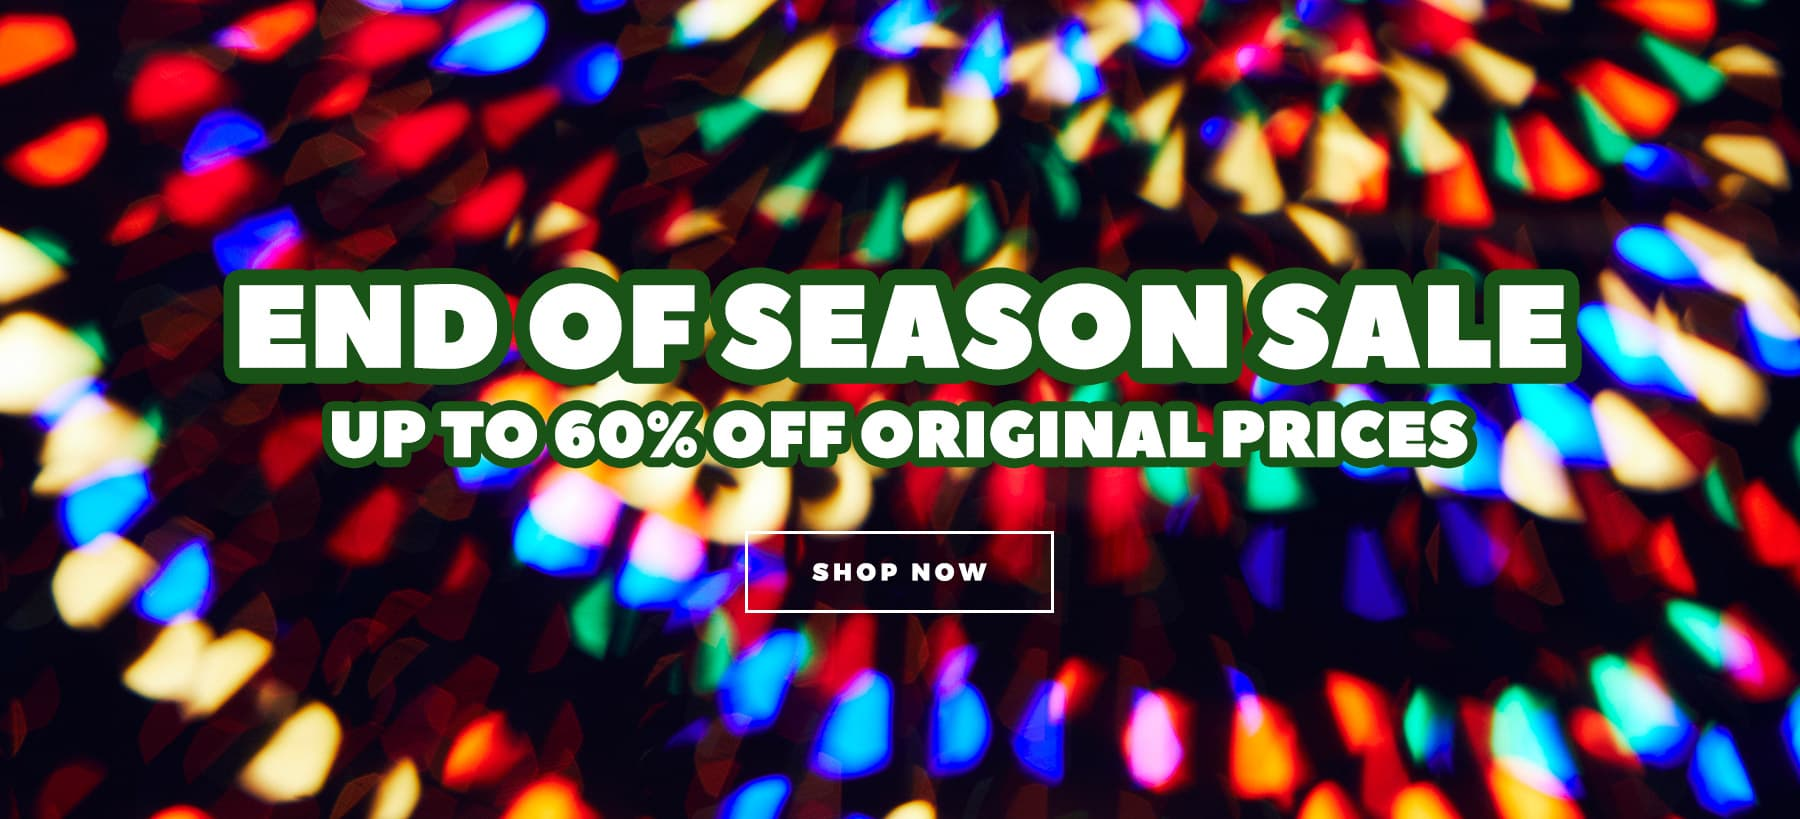 End Of Season Sale - SAVINGS UP TO 60% OFF ORIGINAL PRICES - Shop Now